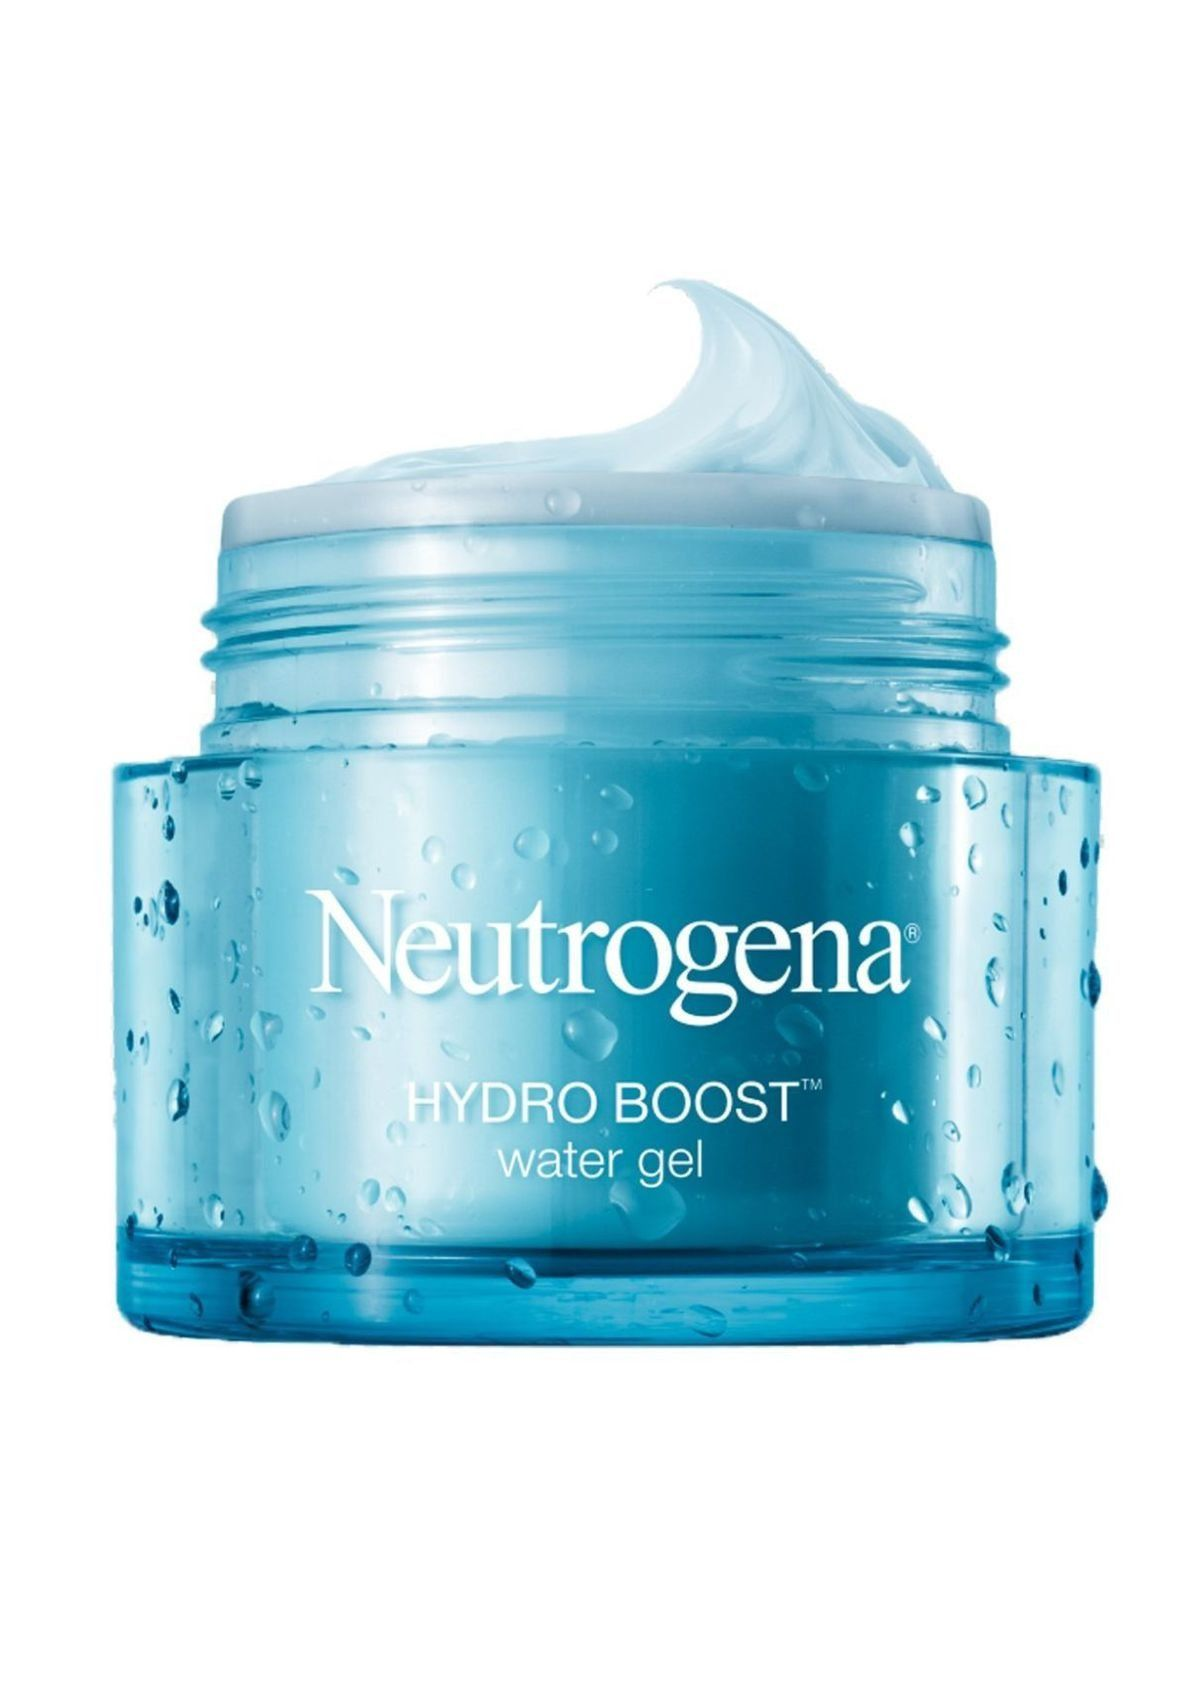 Neutrogena Hydro Boost Water Gel Water Based Moisturiser Neutrogena Hydro Boost Neutrogena